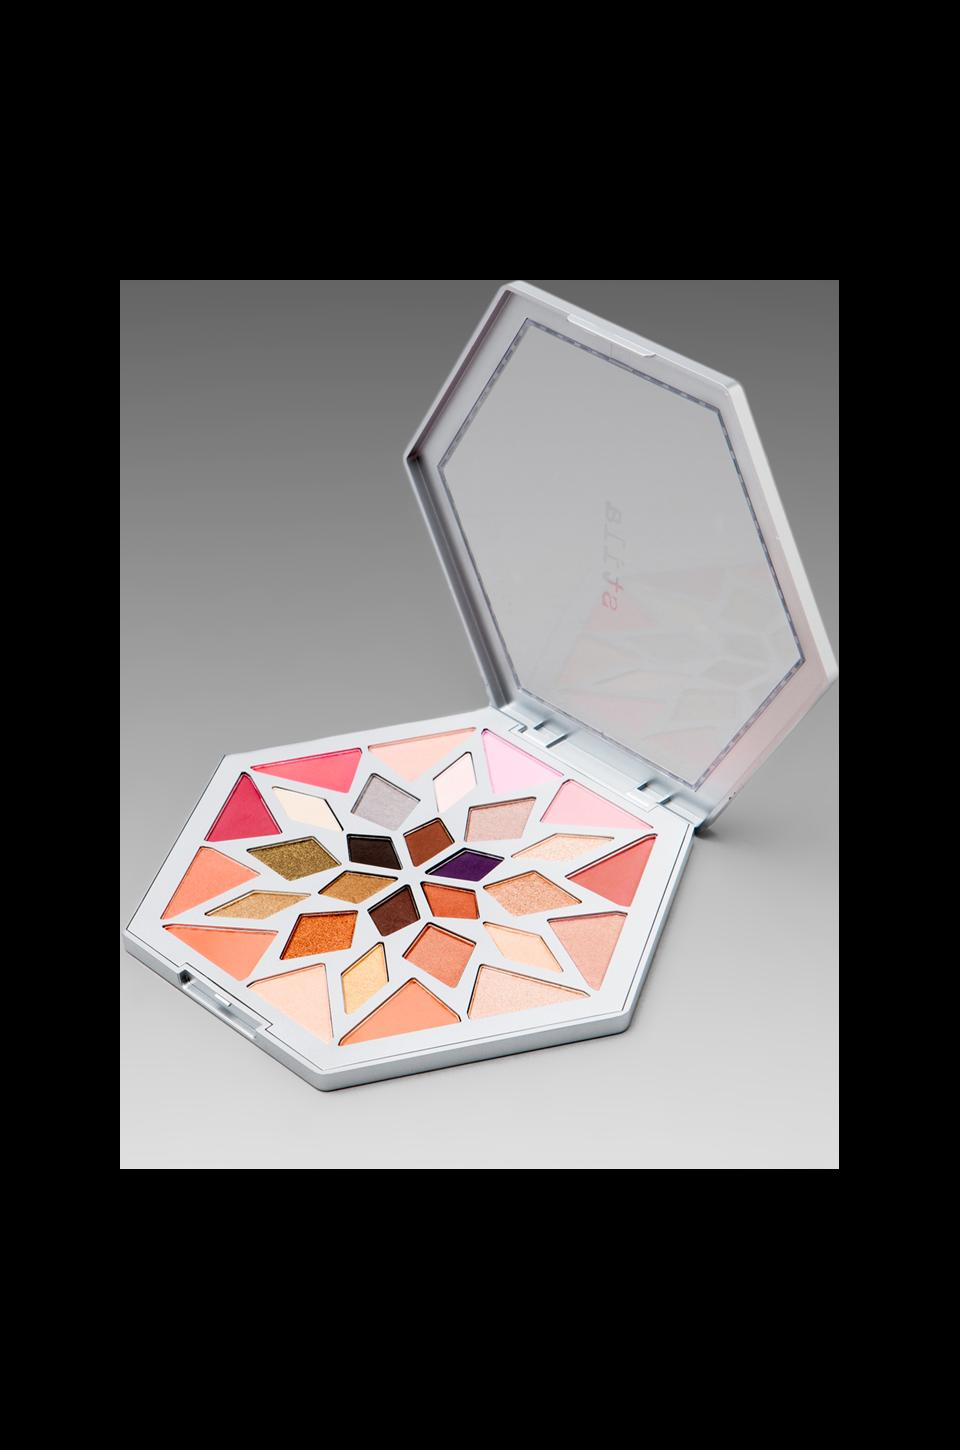 Stila Snow Angel Color Palette with Mascara in Multi